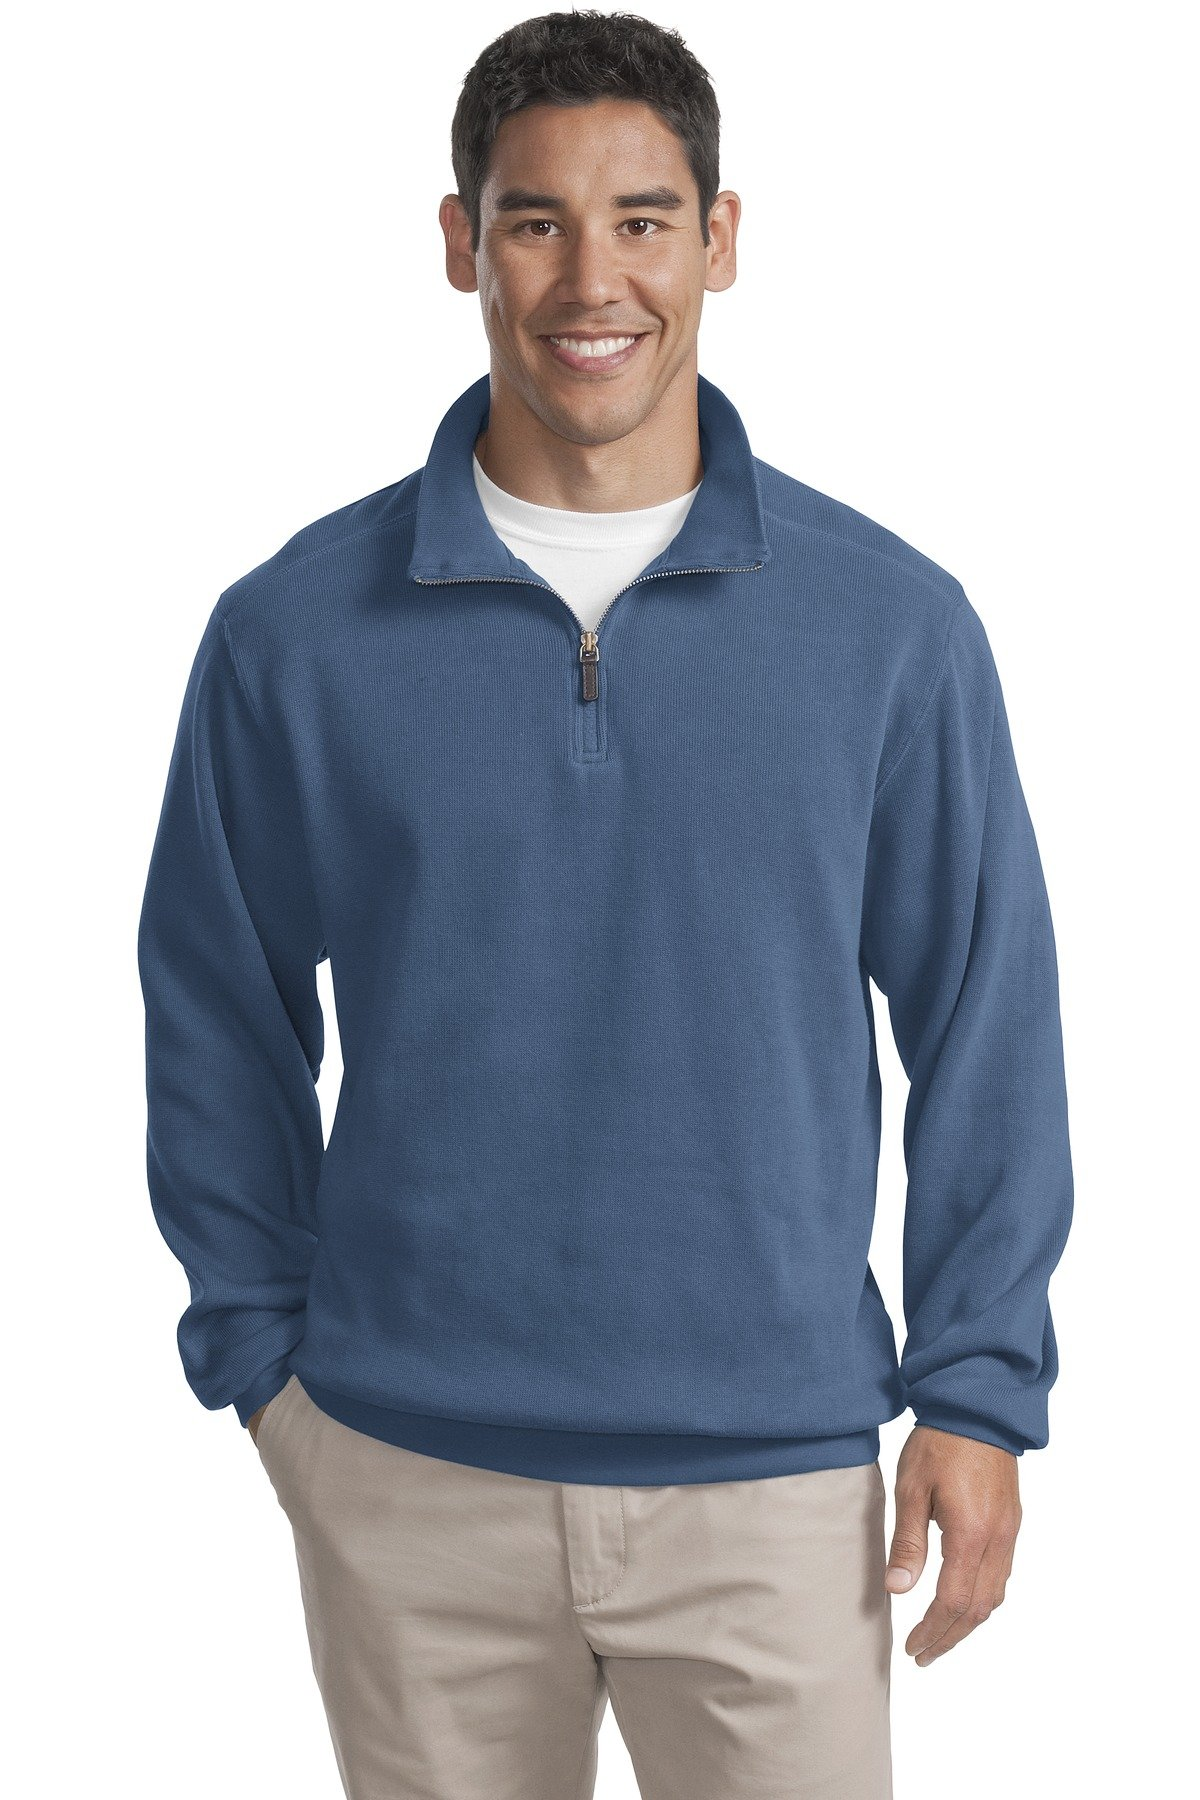 Port Authority Zip Rib Flatback Sweatshirt